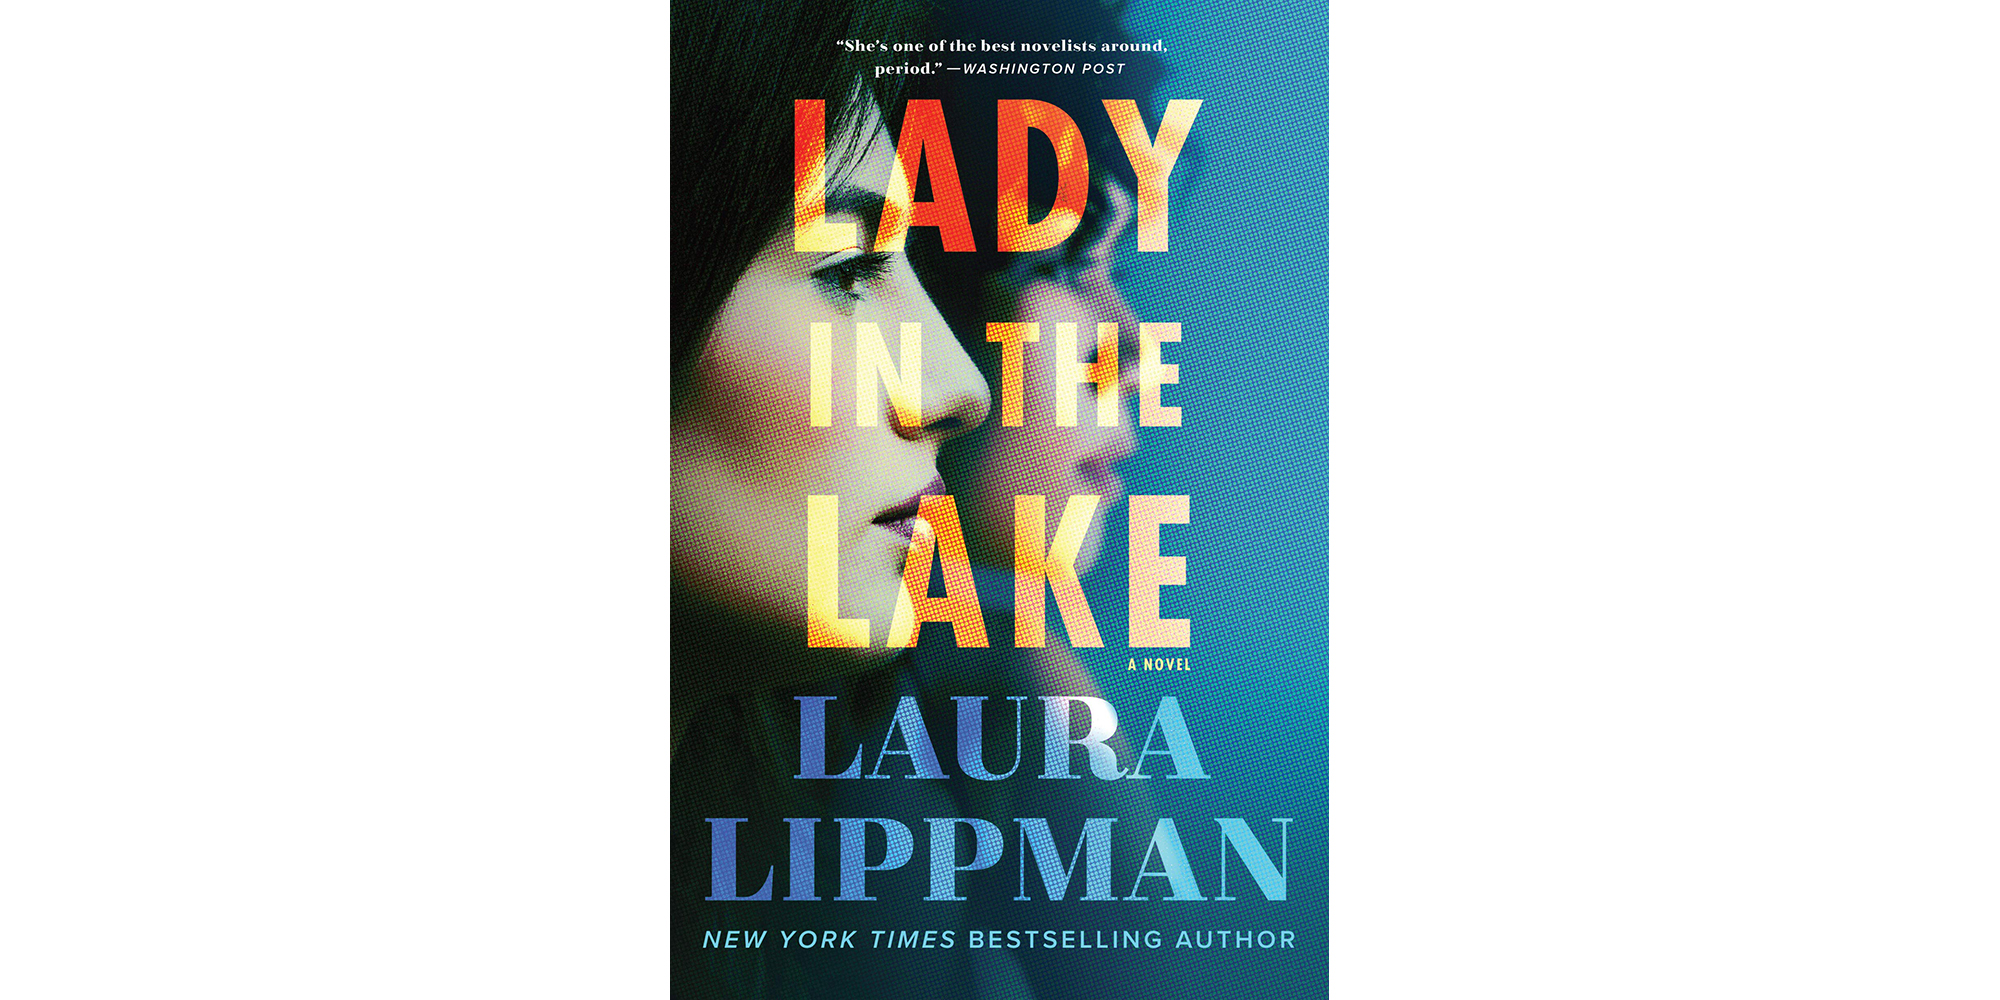 Lady in the Lake, by Laura Lippman